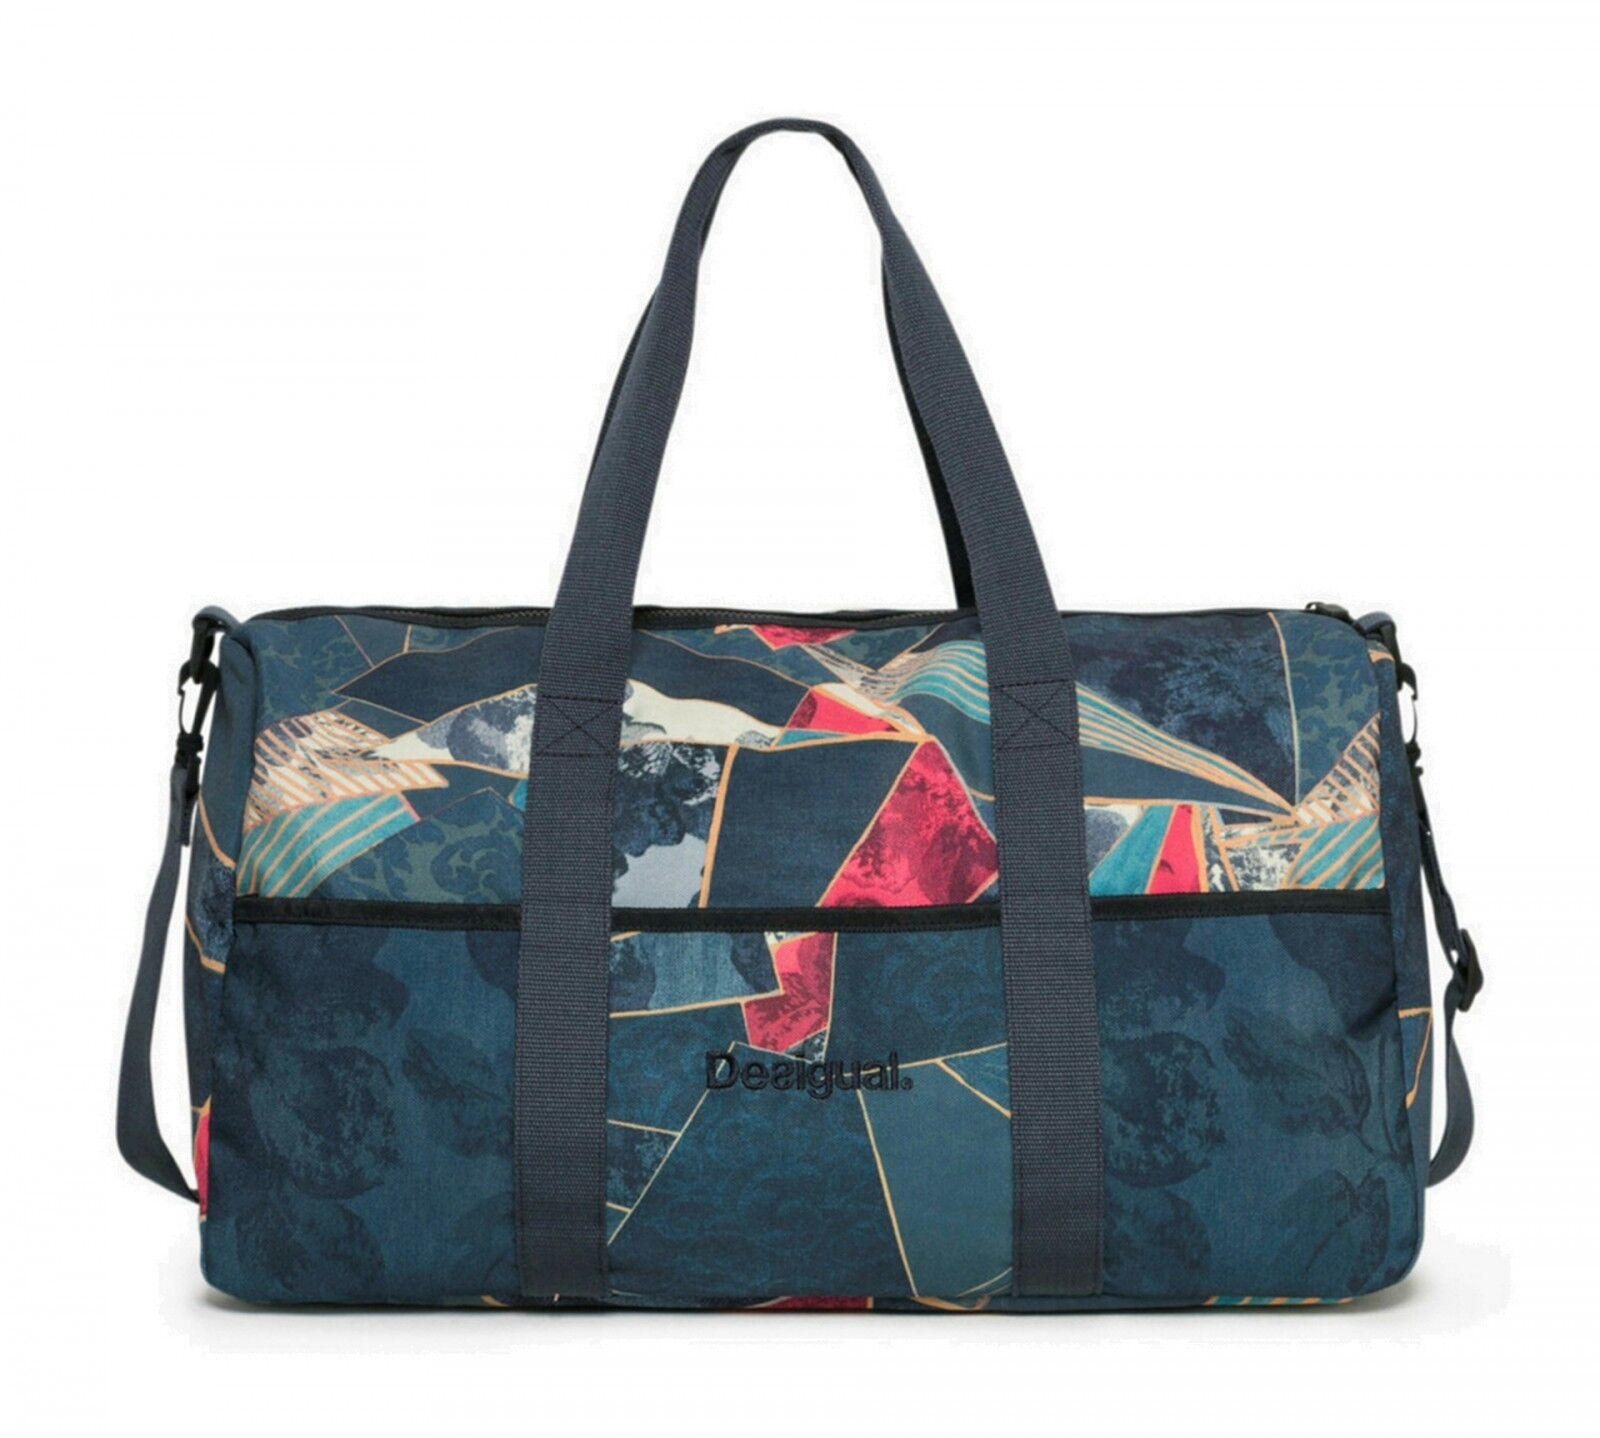 Desigual Bolsa De Deporte Dark Denim Gym Bag